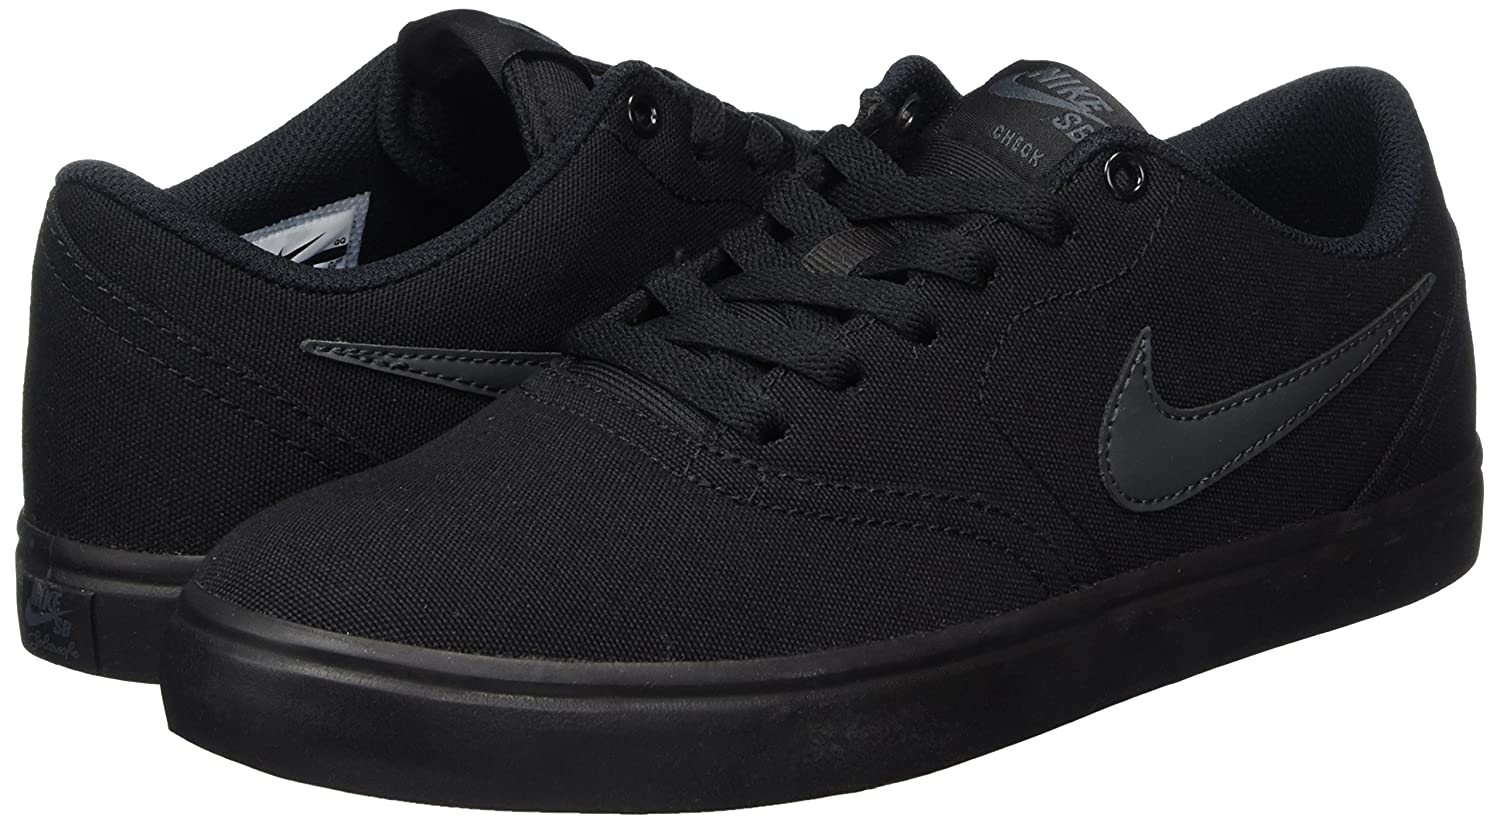 NIKE Men's SB Check Solarsoft Canvas Skateboarding Shoe B0178Q8AUU 8 D(M) US|Black/Anthracite